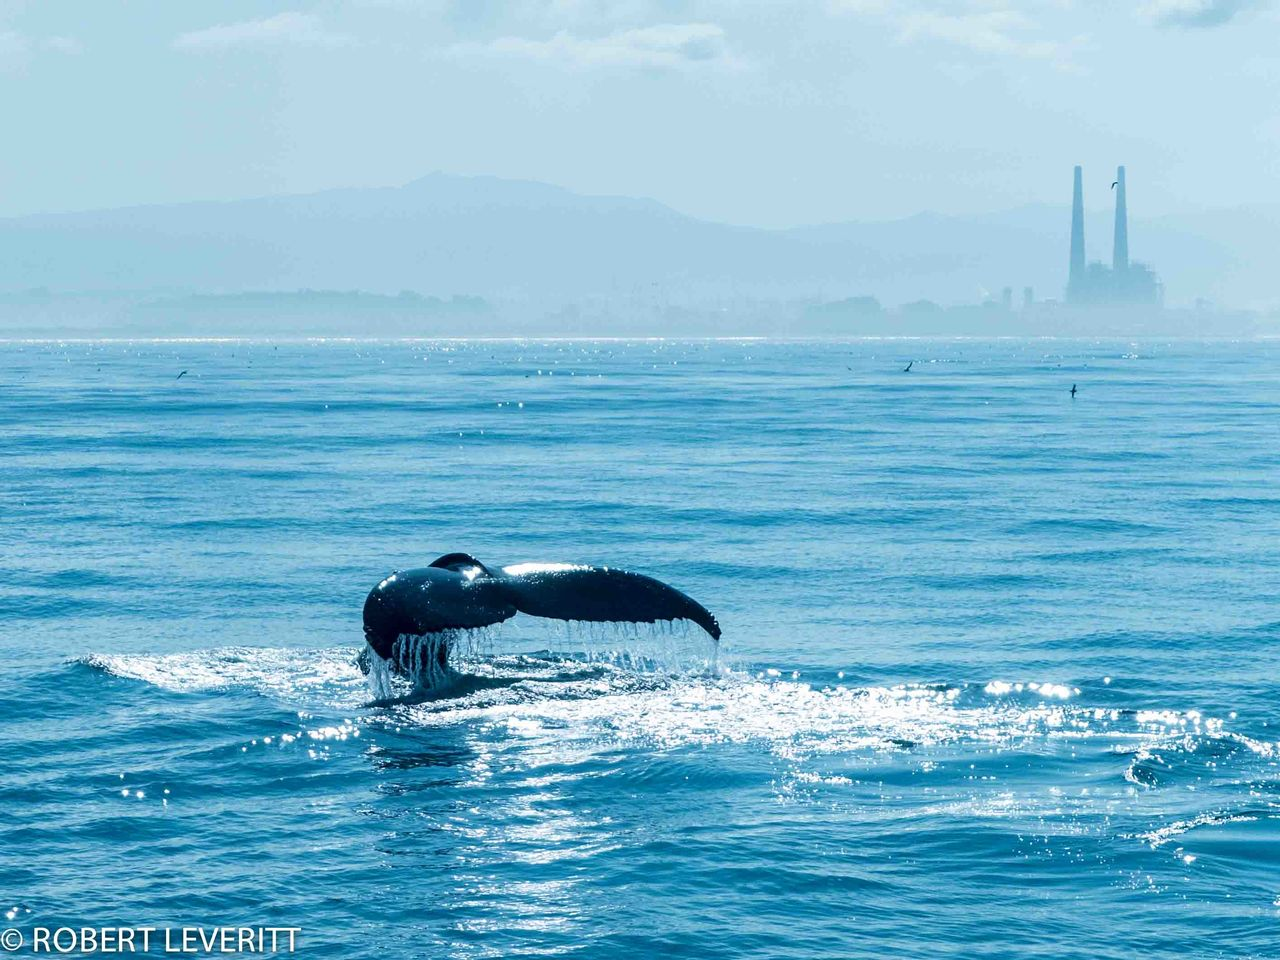 sea, water, one animal, animal themes, no people, nature, outdoors, animals in the wild, day, whale, sky, beauty in nature, mammal, aquatic mammal, swimming, sea life, humpback whale